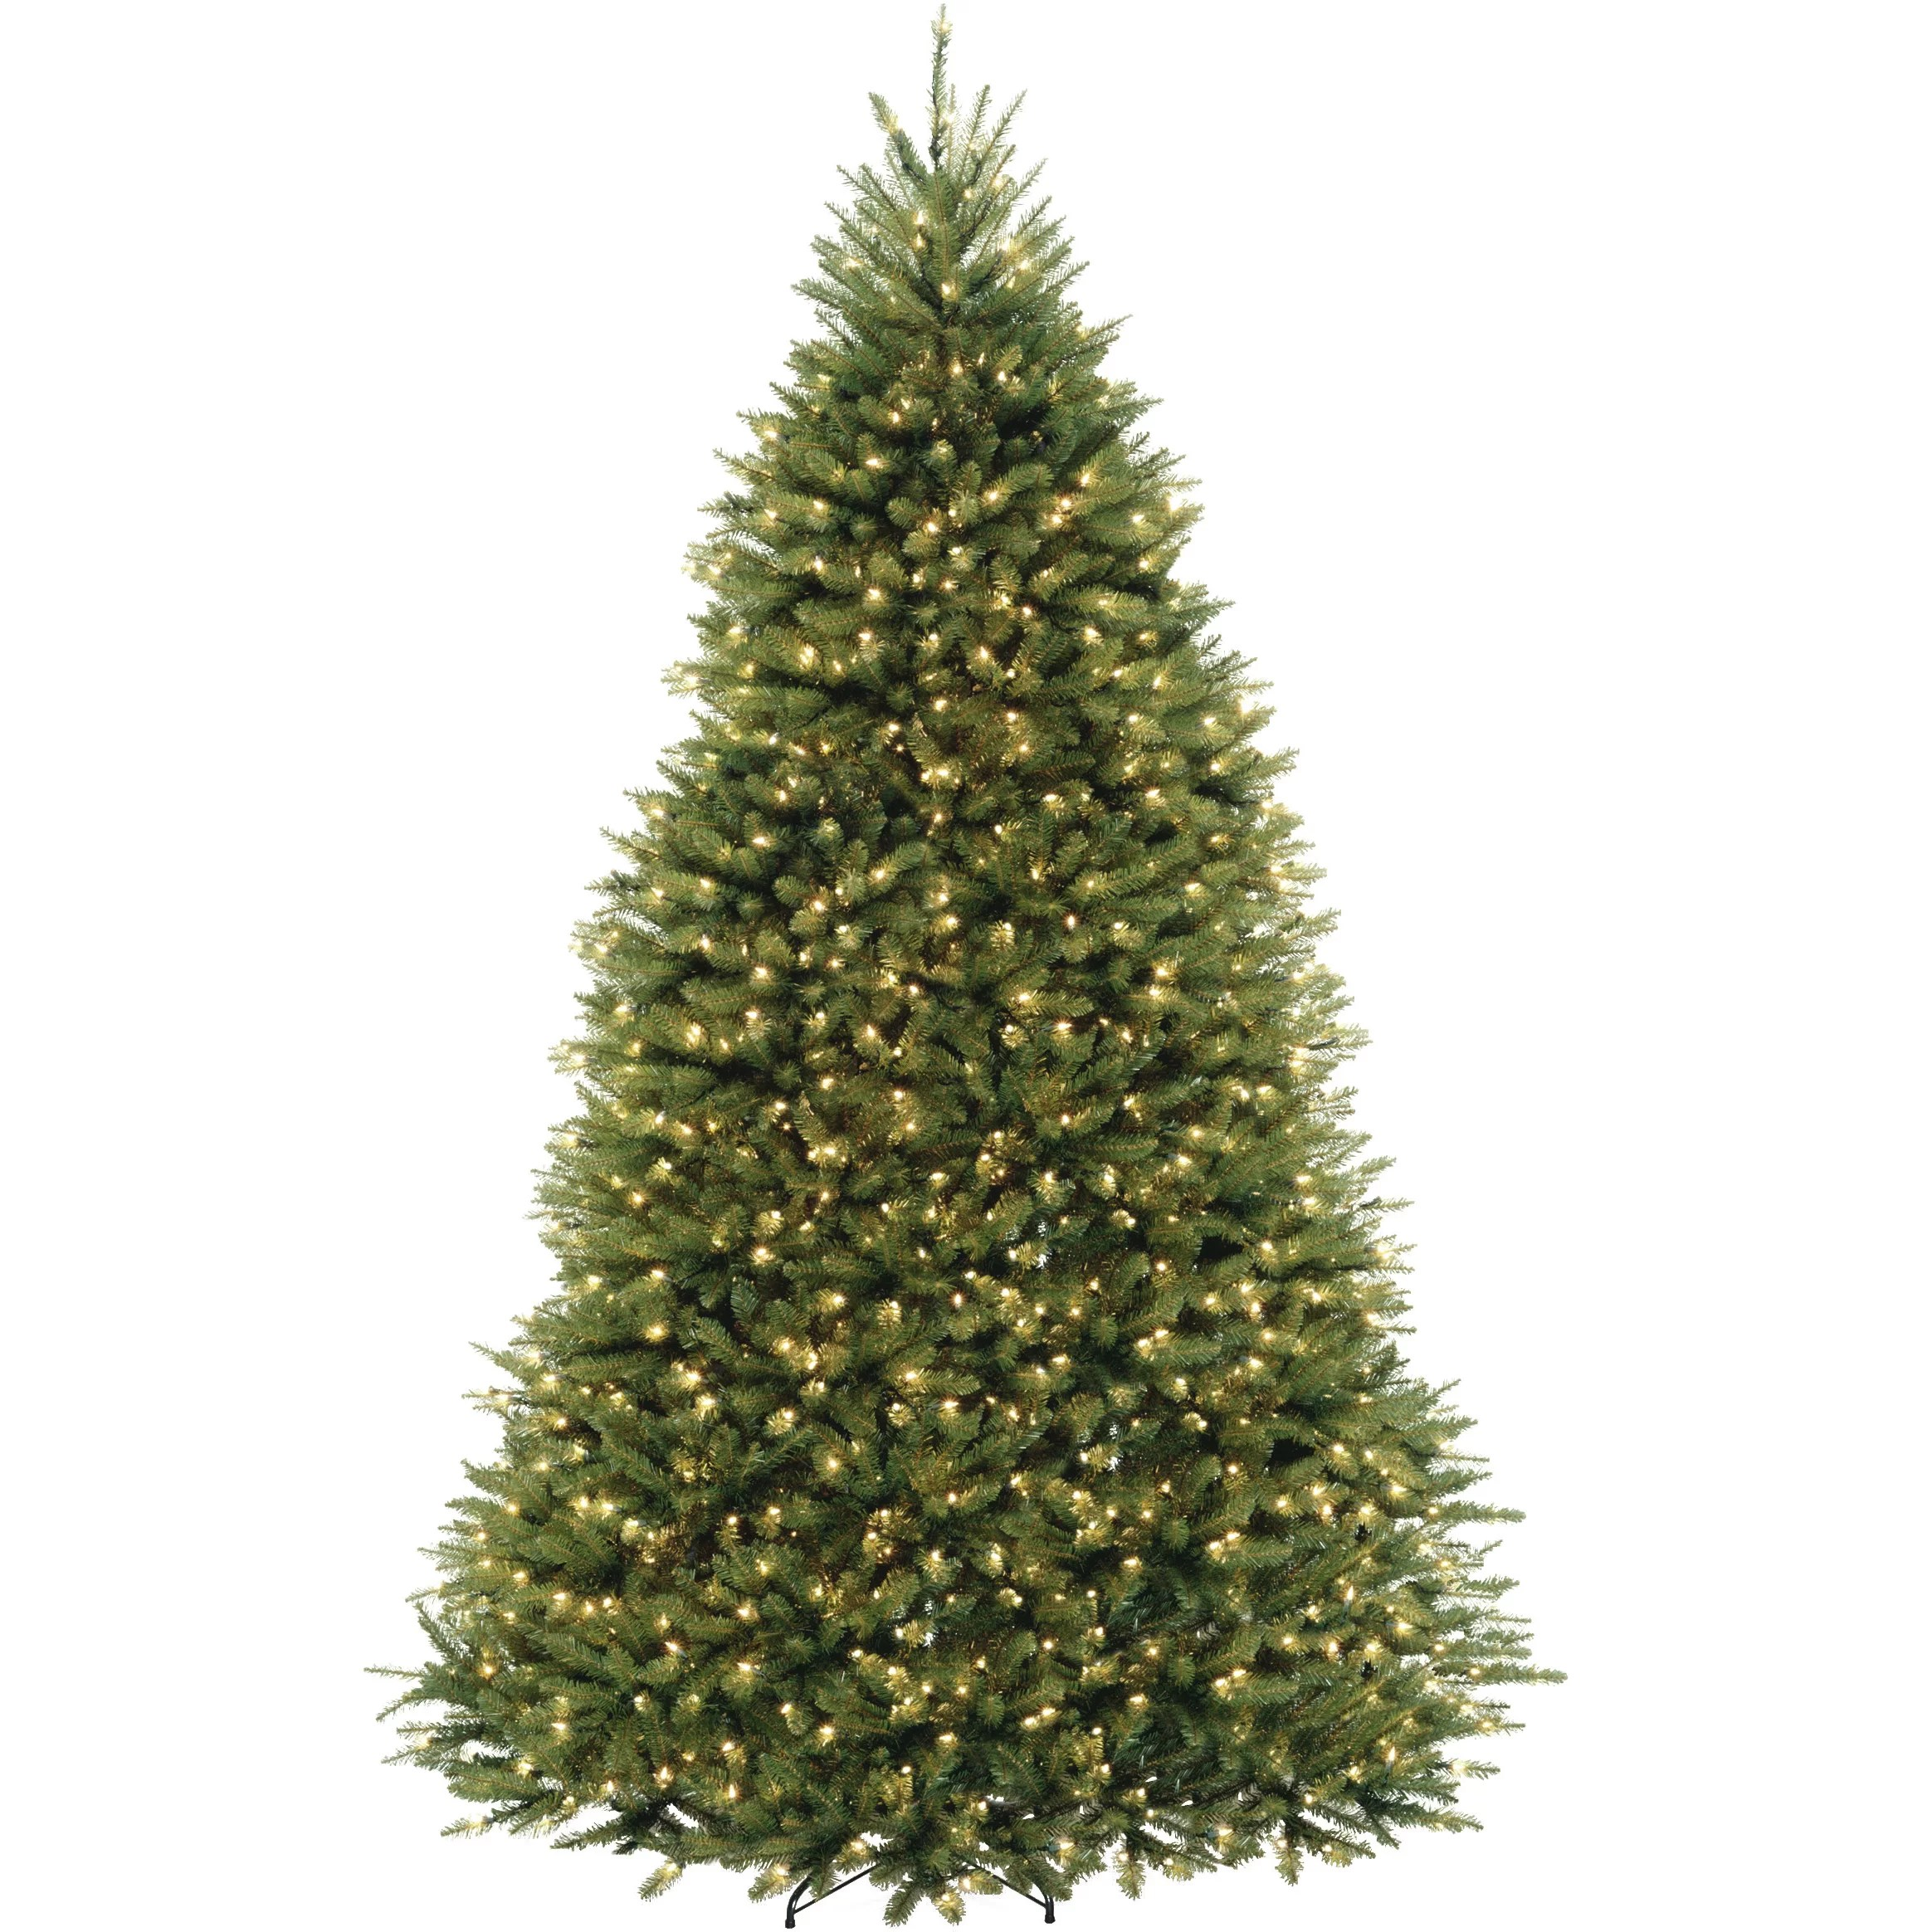 Home Accents Holiday Tree 9ft